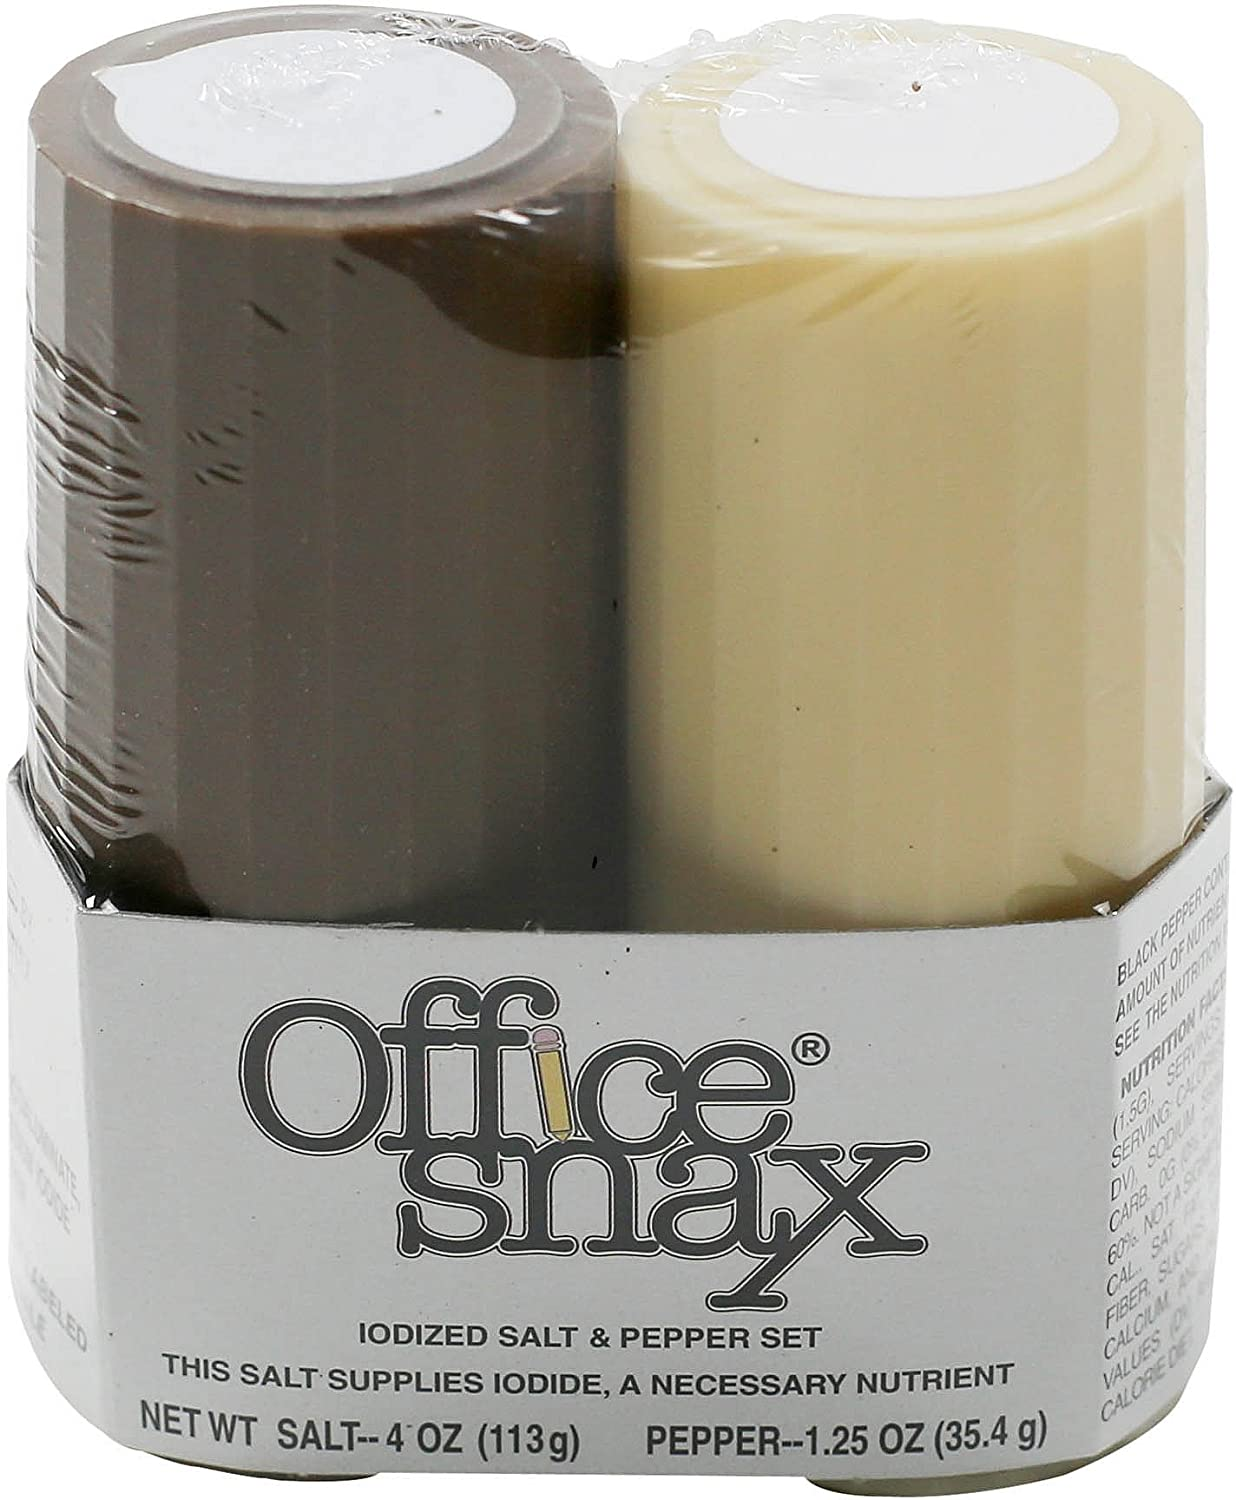 Office Snax OFX00057 Salt and Pepper Shaker Set, One 4-Ounce Salt Shaker and One 1.25-Ounce Pepper Shaker